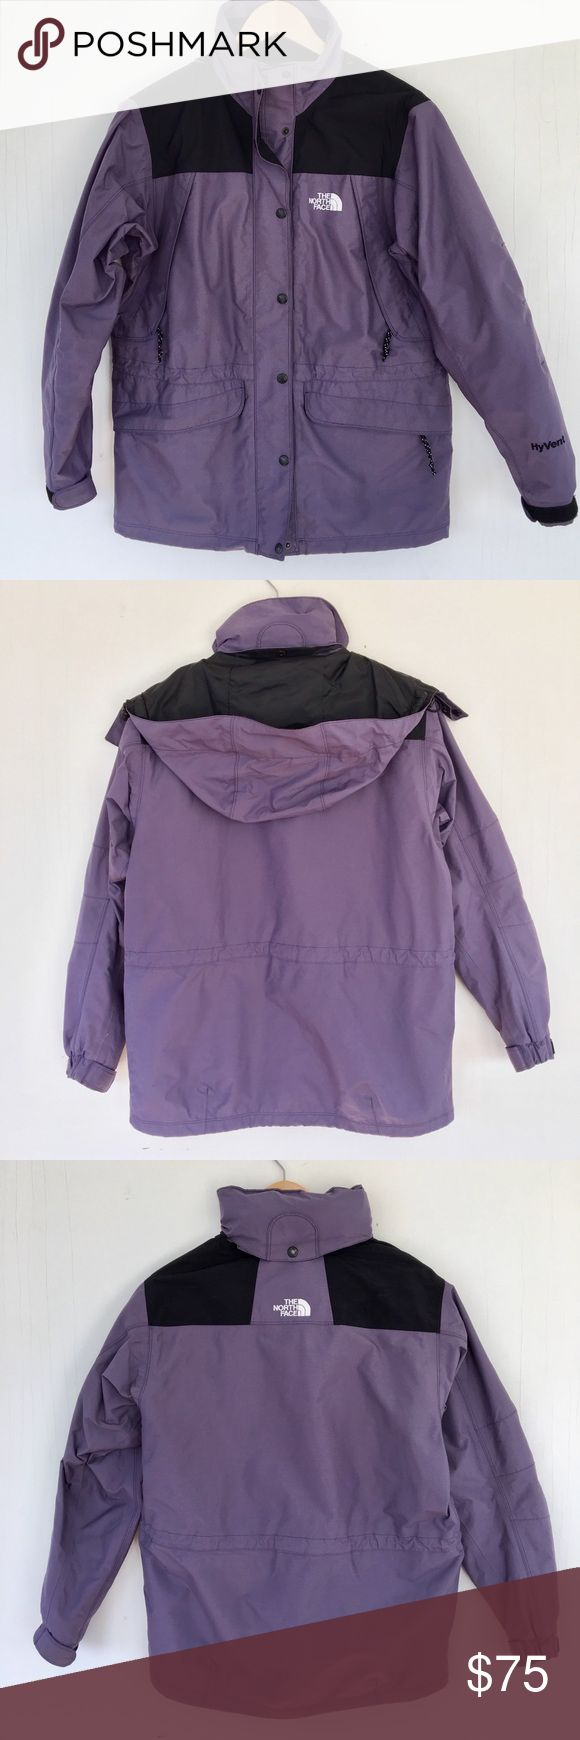 The North Face shell Waterproof jacket in an understated lavender shade. Includes mesh lining, waterproof/windproof/breathable dryvent shell, exposed center front zip, hem cinch cord, elastic bound cuffs, and media compatible secure pockets. Hood can snapped into collar. This jacket is in excellent condition, however there is one tiny puncture on sleeve, pictured. Size medium, pictured on a small. The North Face Jackets & Coats Utility Jackets